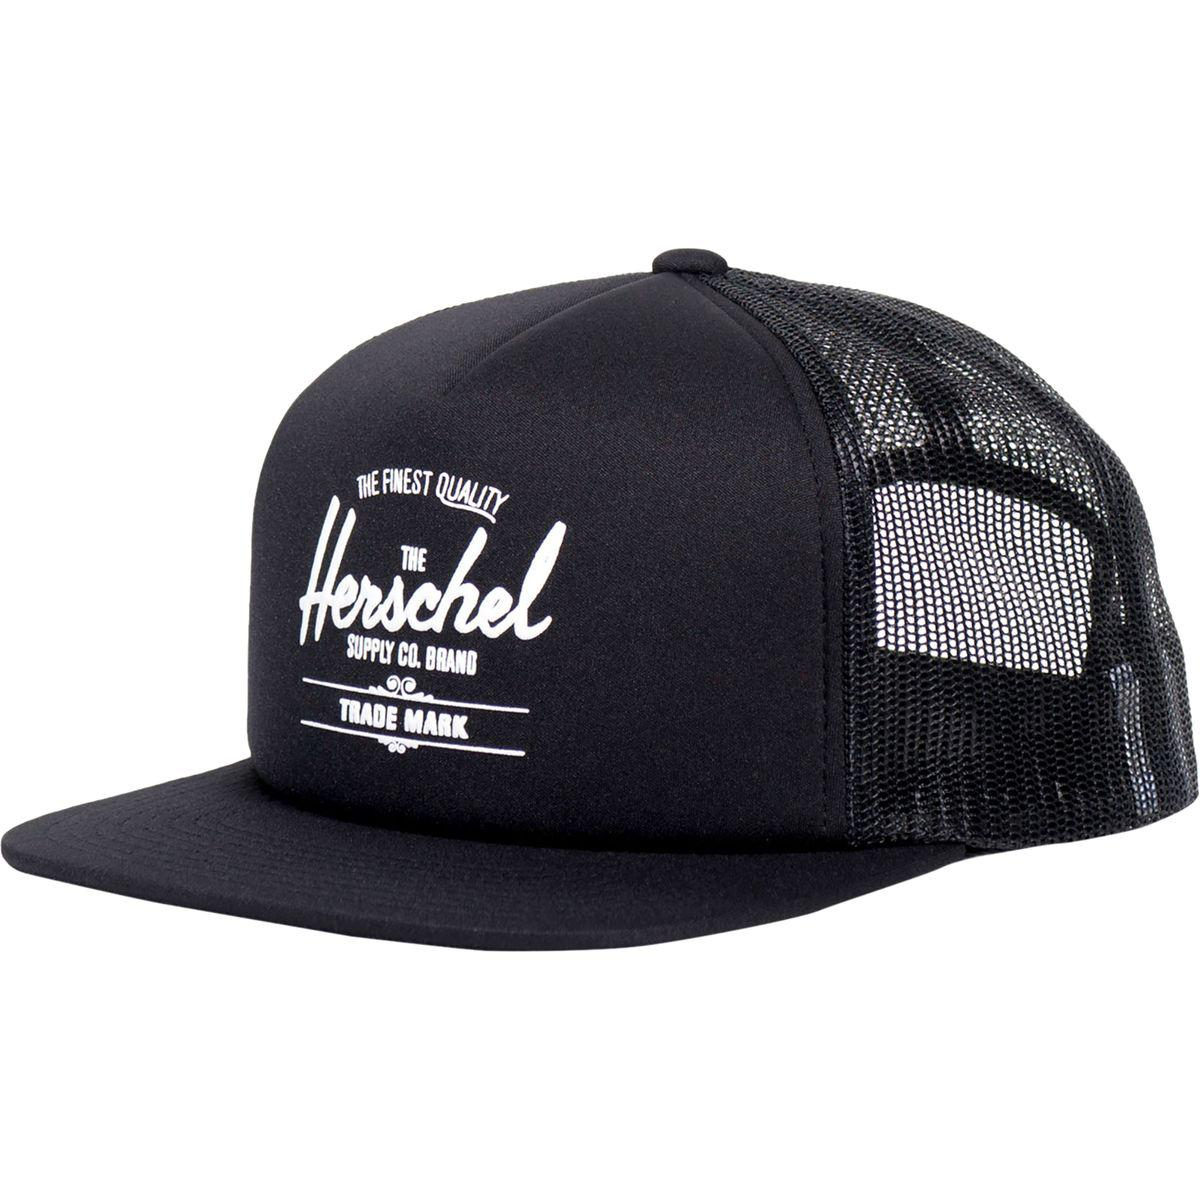 Lyst - Herschel Supply Co. Whaler Mesh Trucker Hat in Black for Men 7c9218038b0d